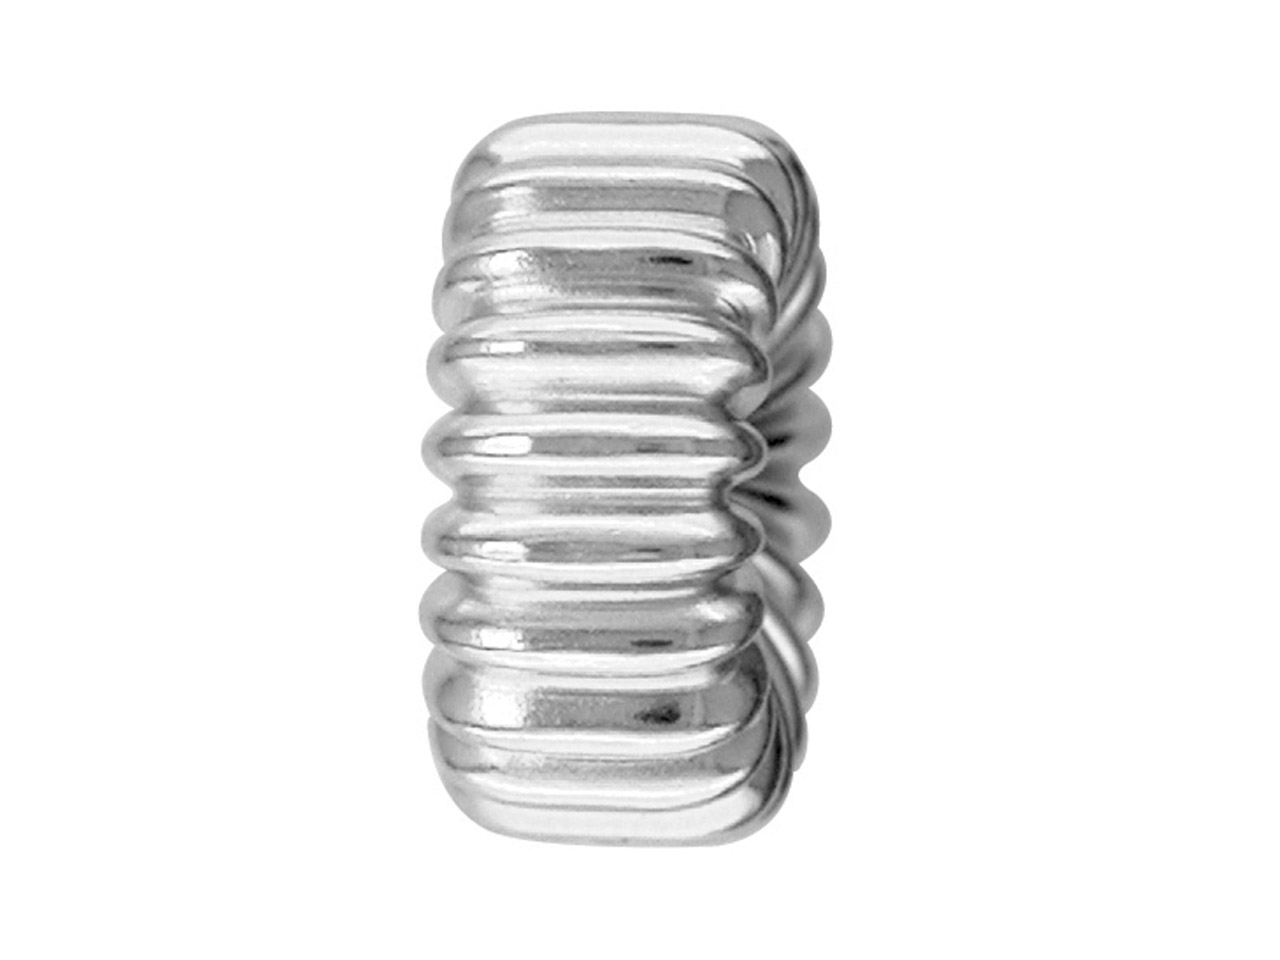 Sterling Silver Flat Corrugated    Beads 3mm, Pack of 10, With        Straight Corrugated Pattern